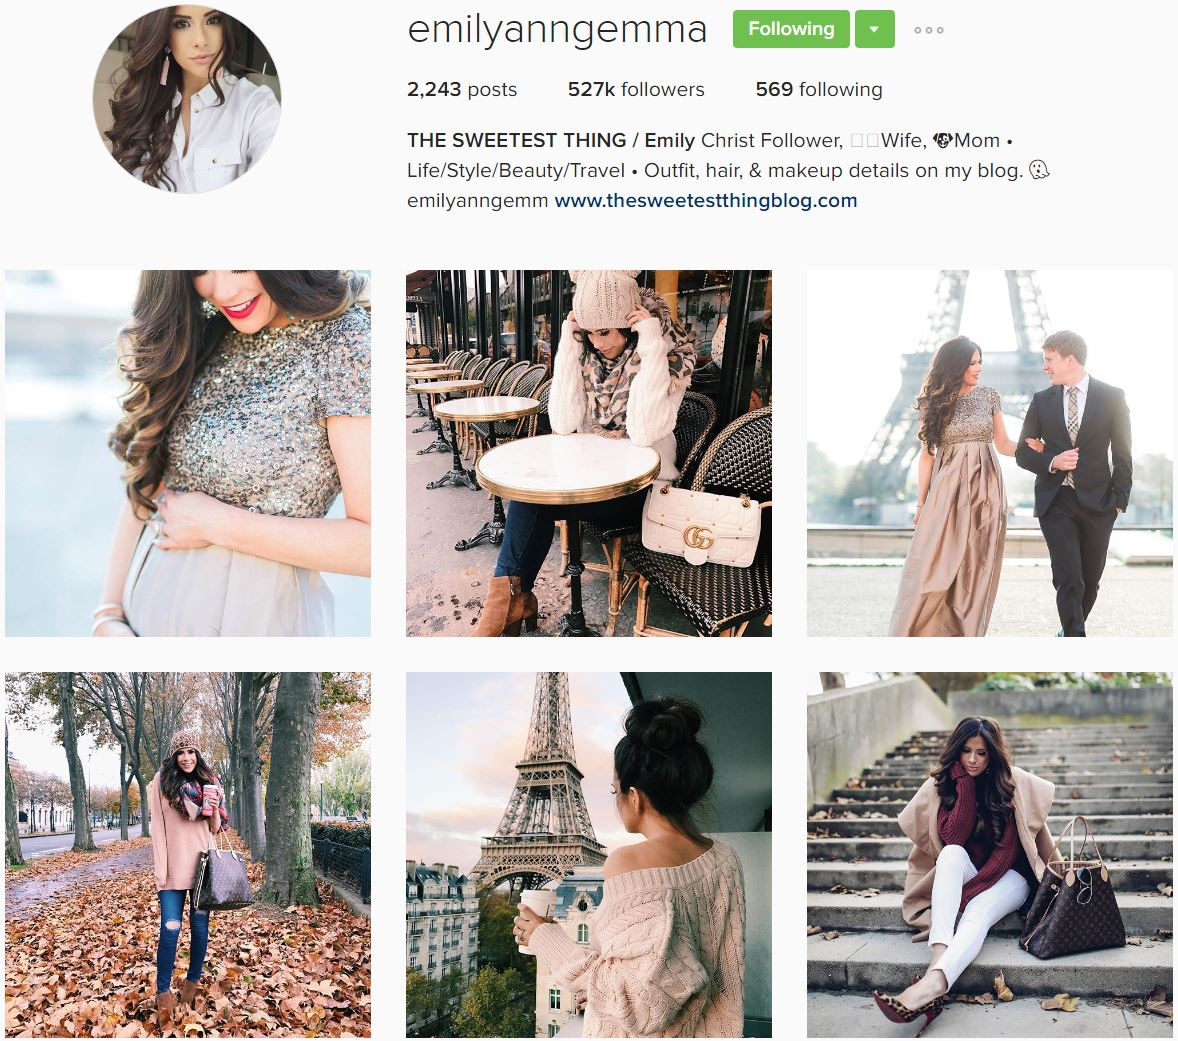 emily-ann-instagram-feed